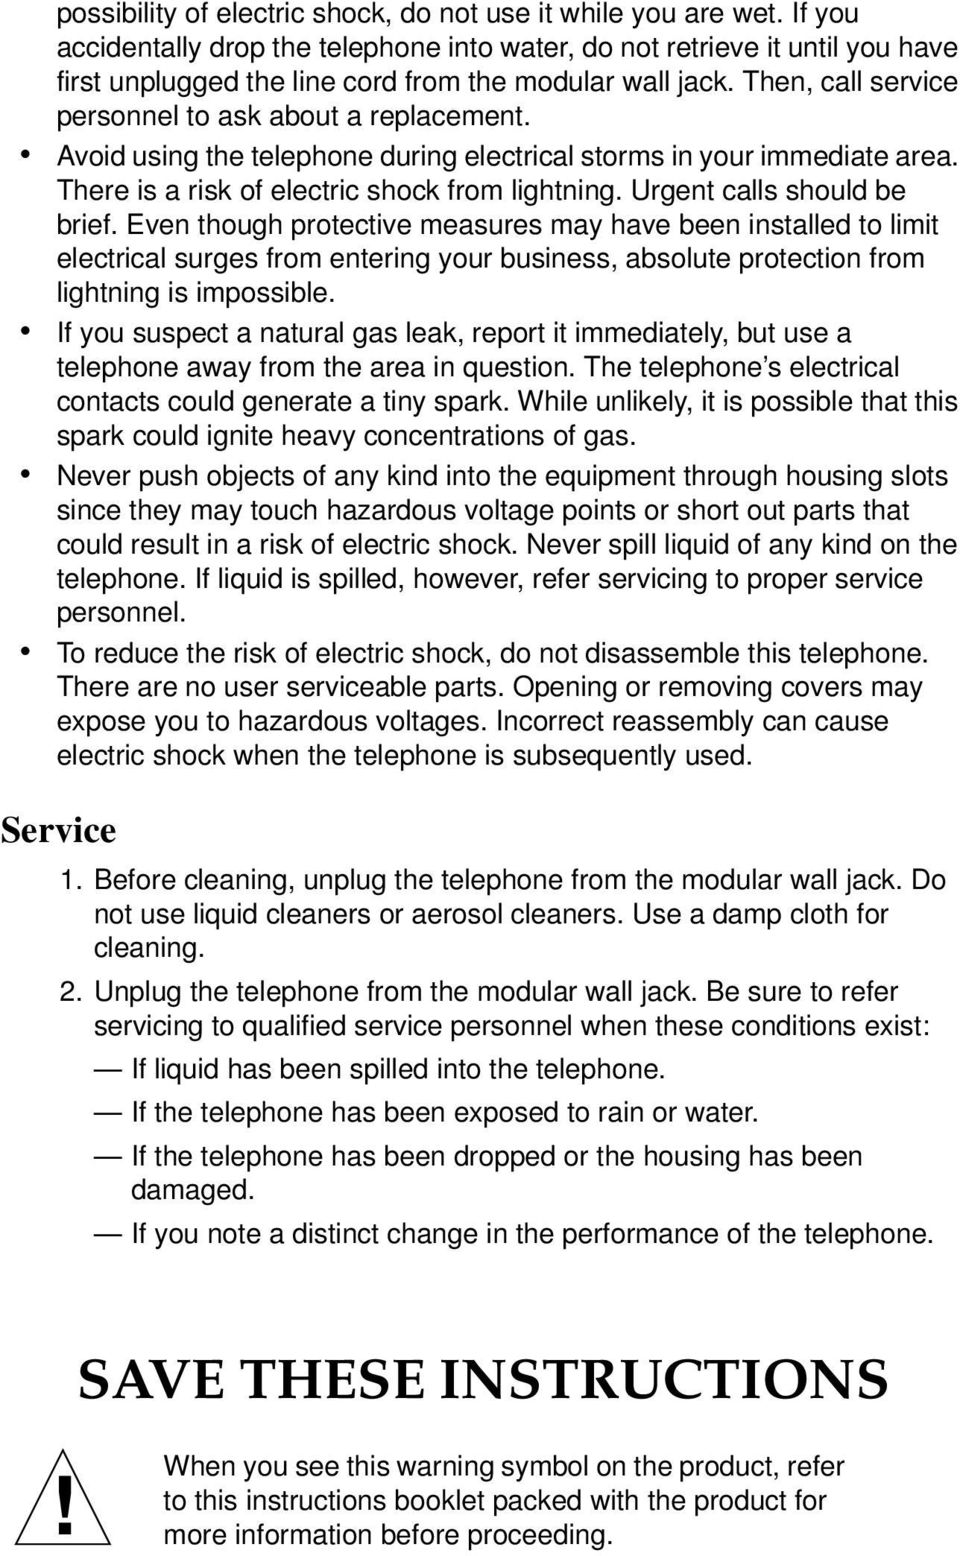 Avoid using the telephone during electrical storms in your immediate area. There is a risk of electric shock from lightning. Urgent calls should be brief.